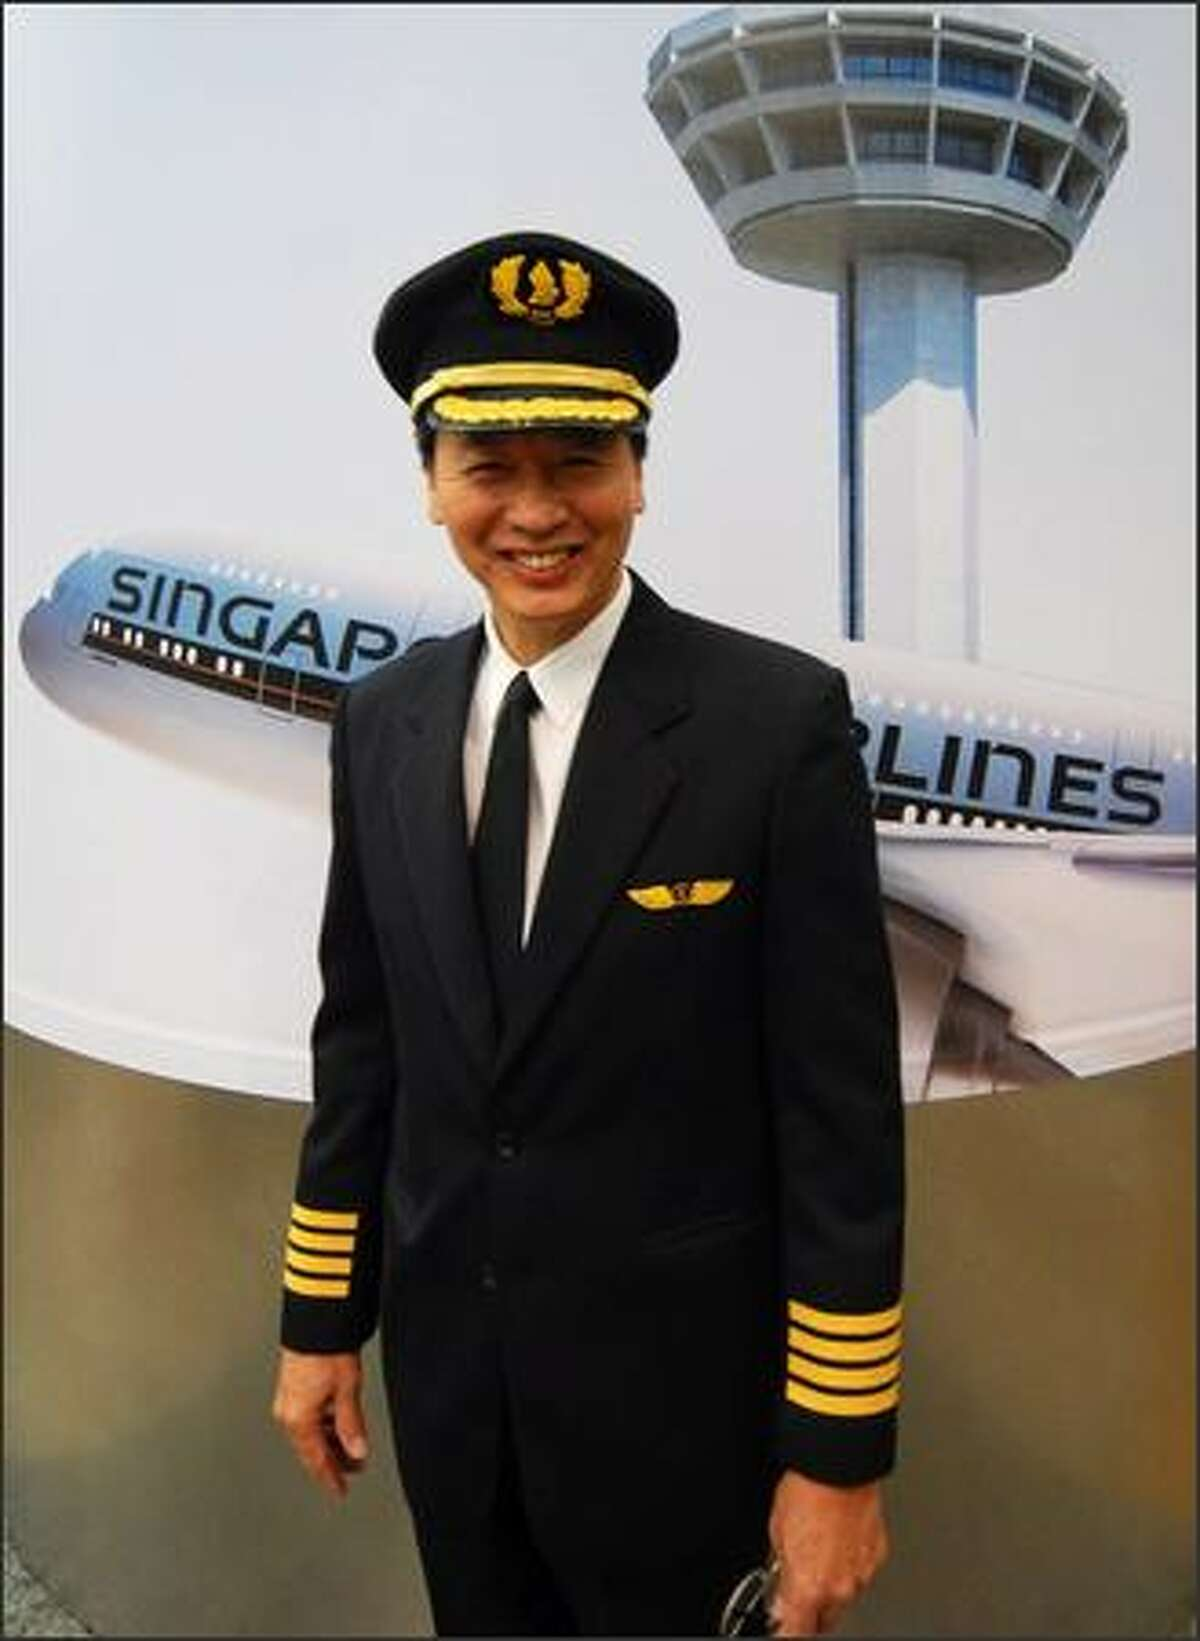 Captain Robert Ting poses for photographers before the maiden flight.